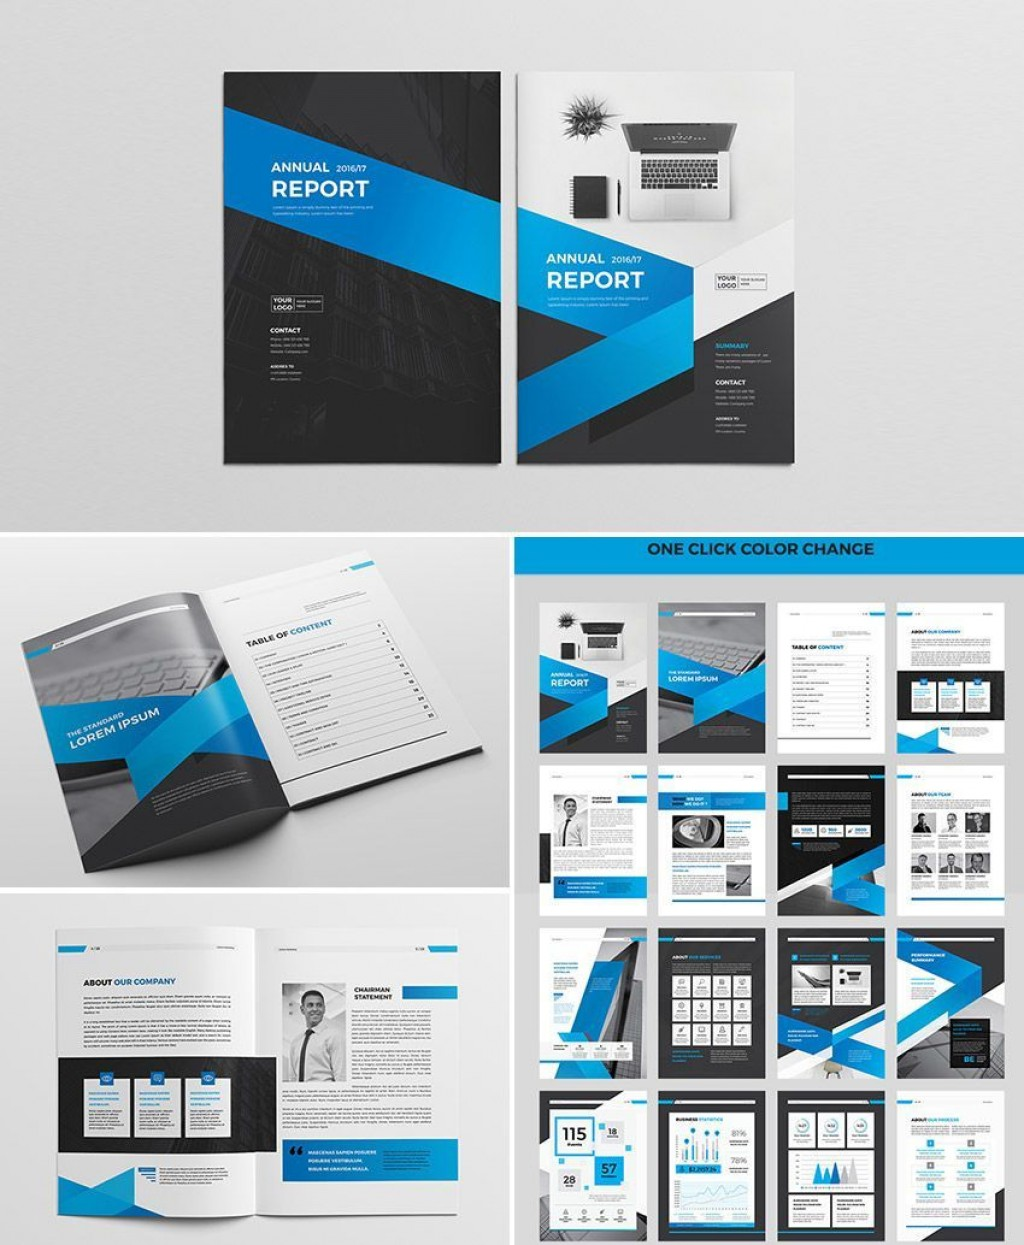 004 Awful Annual Report Design Template Indesign Highest Clarity  Free DownloadLarge